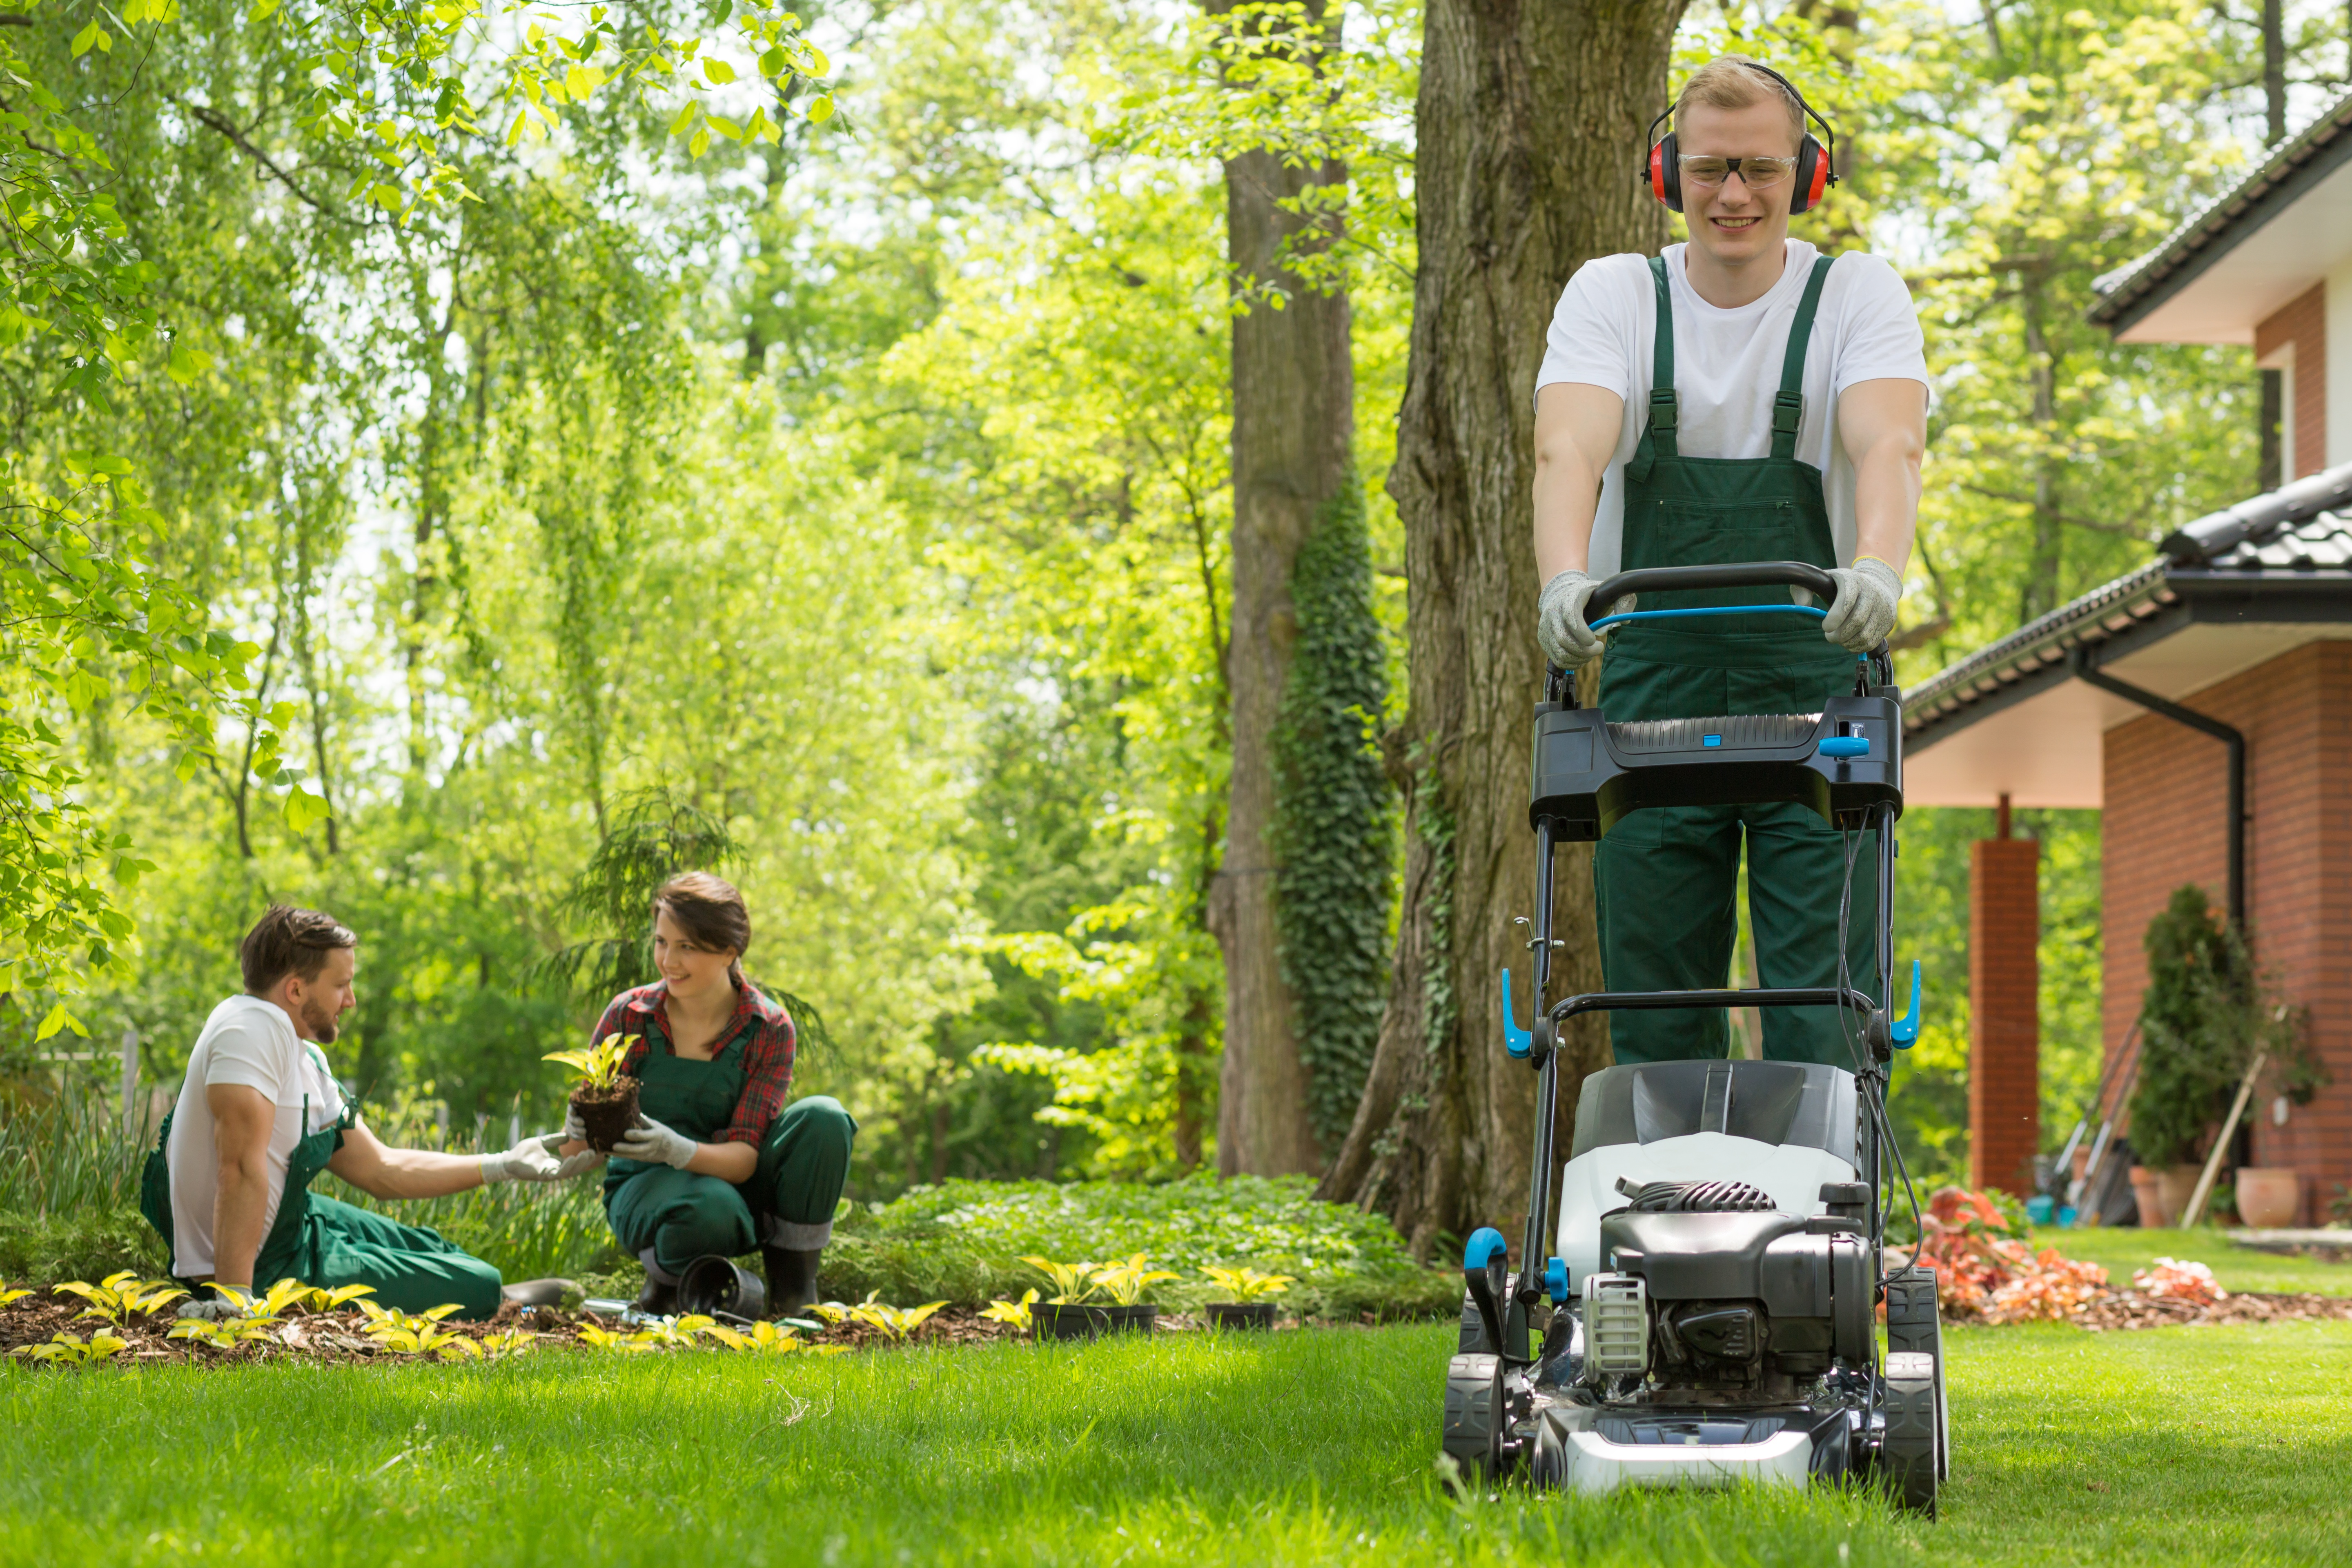 Mowing Safety Tips - Featured Image